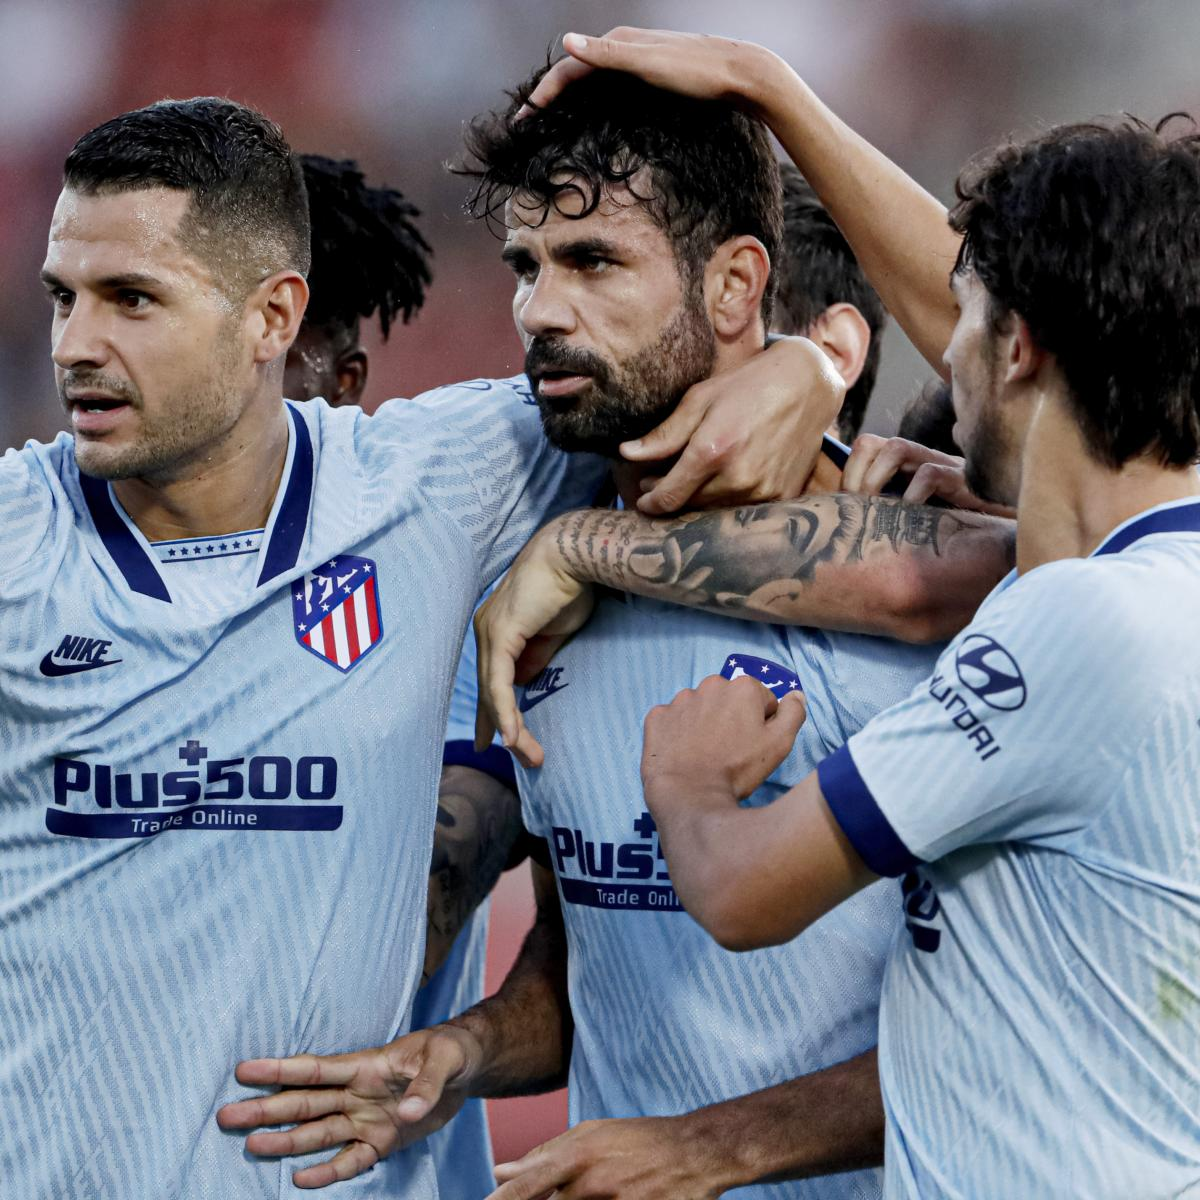 Atletico Madrid vs. Real Madrid: Odds, Live Stream, TV Schedule and Preview